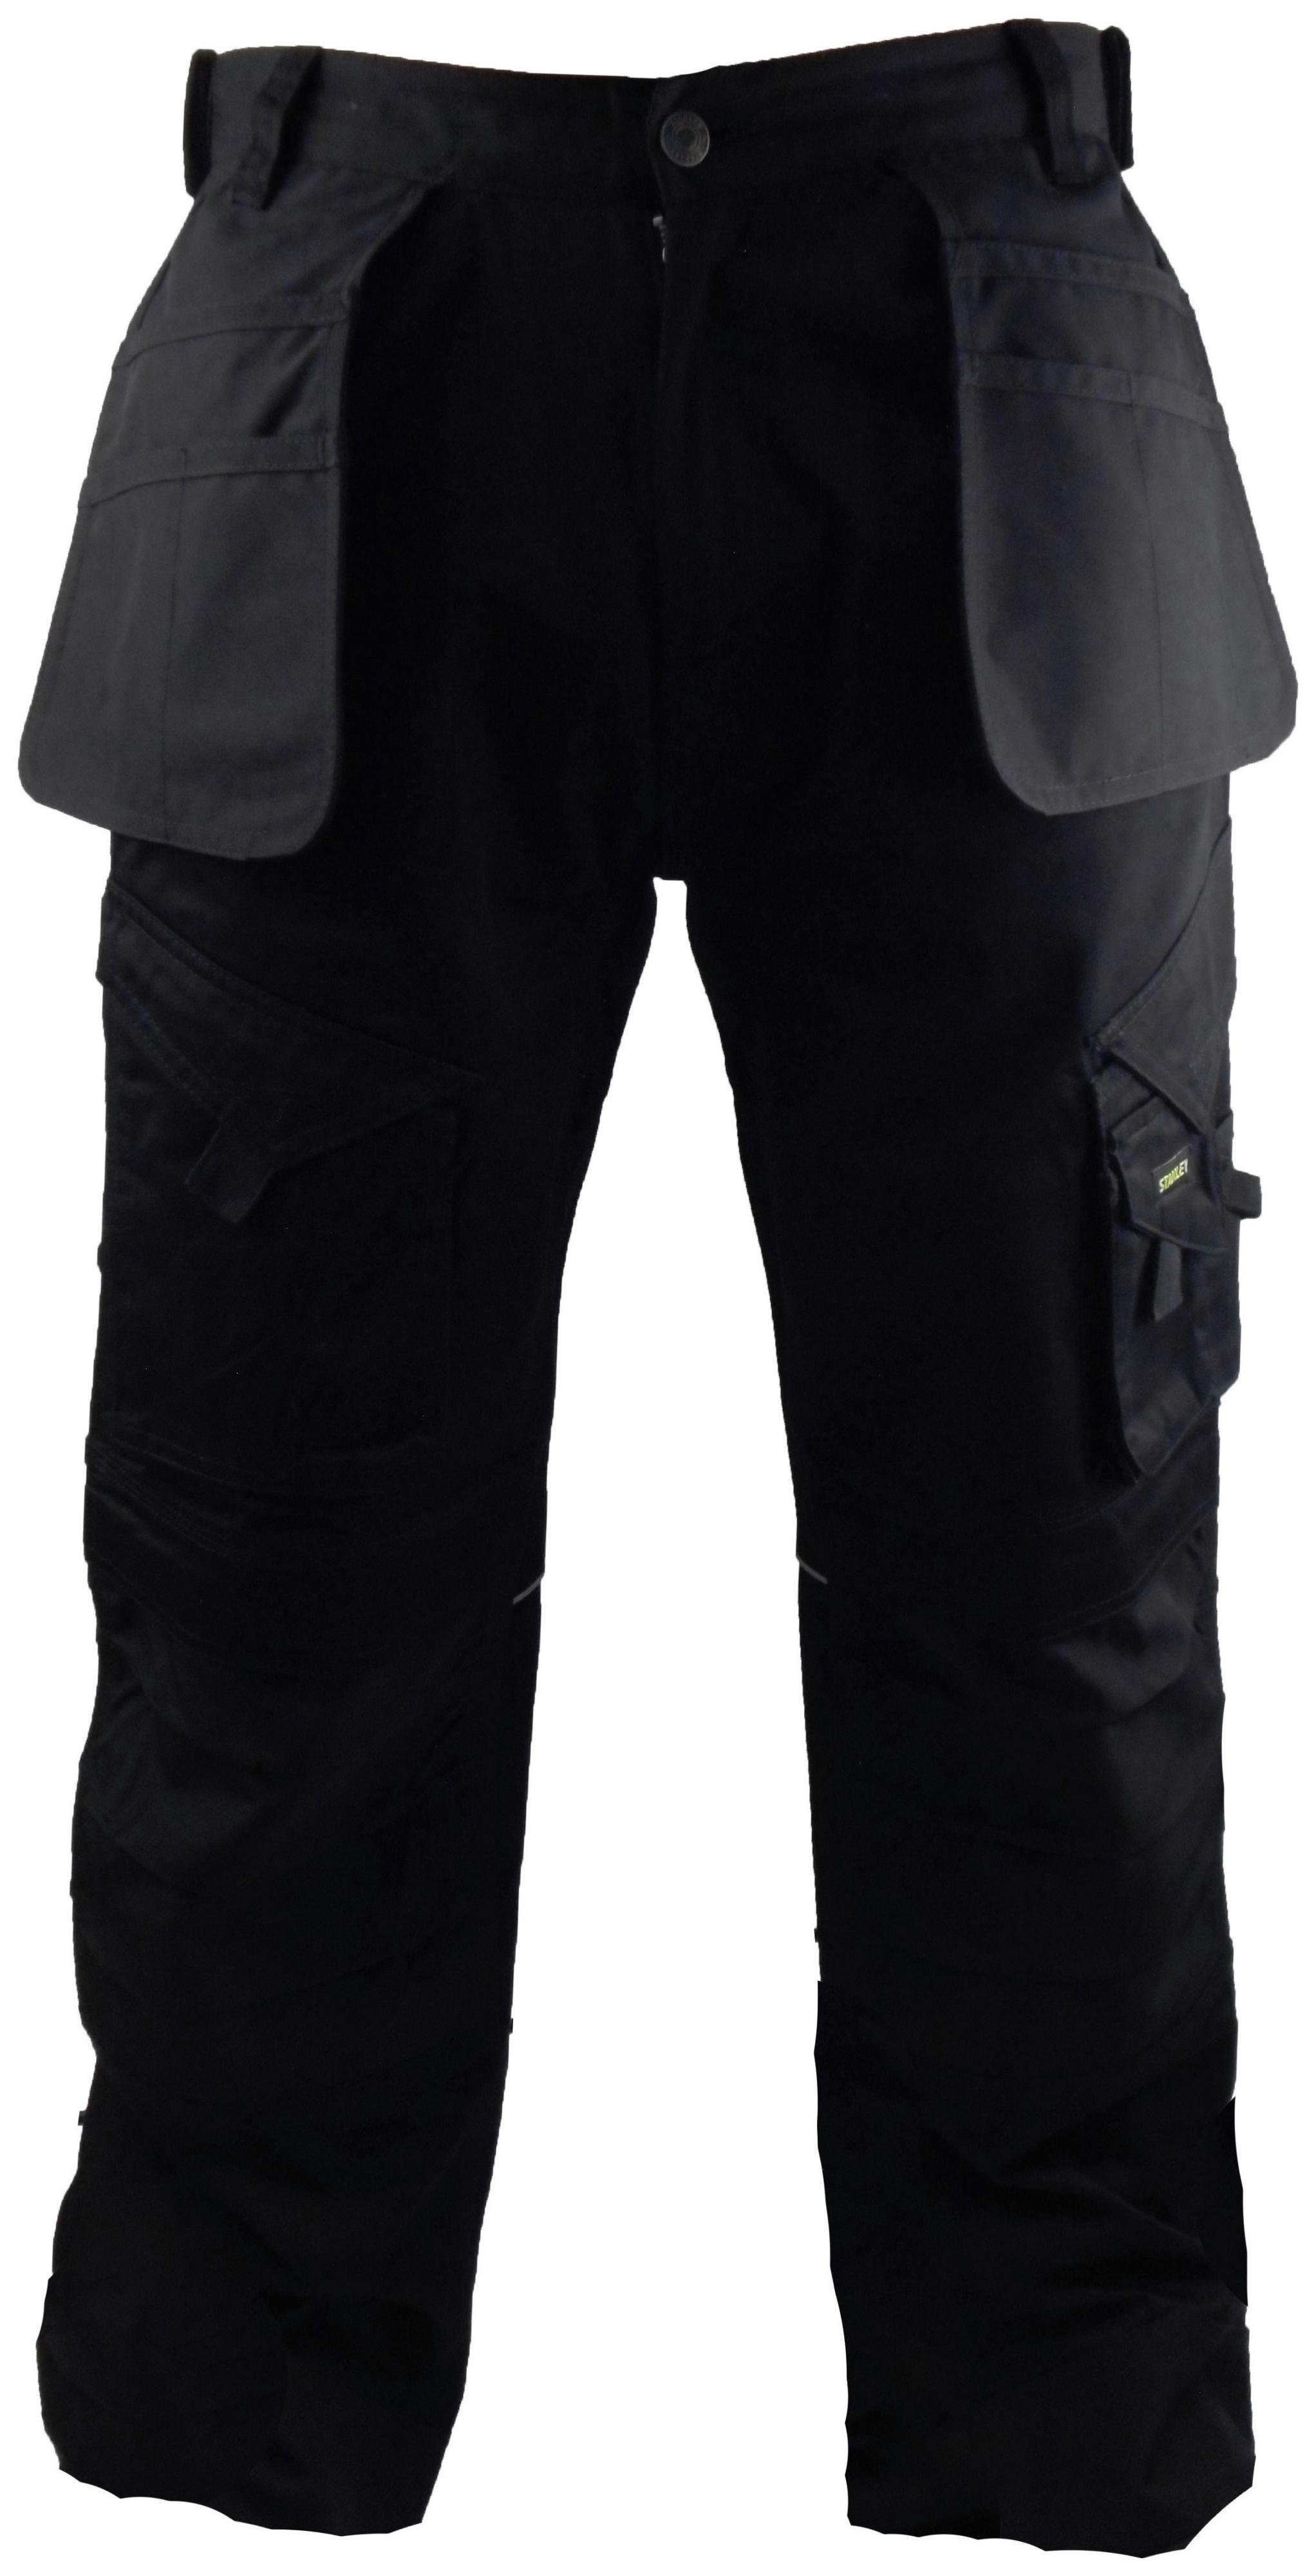 Image of Stanley - Colorado - Mens - Black Trouser - 31 to 38 inch